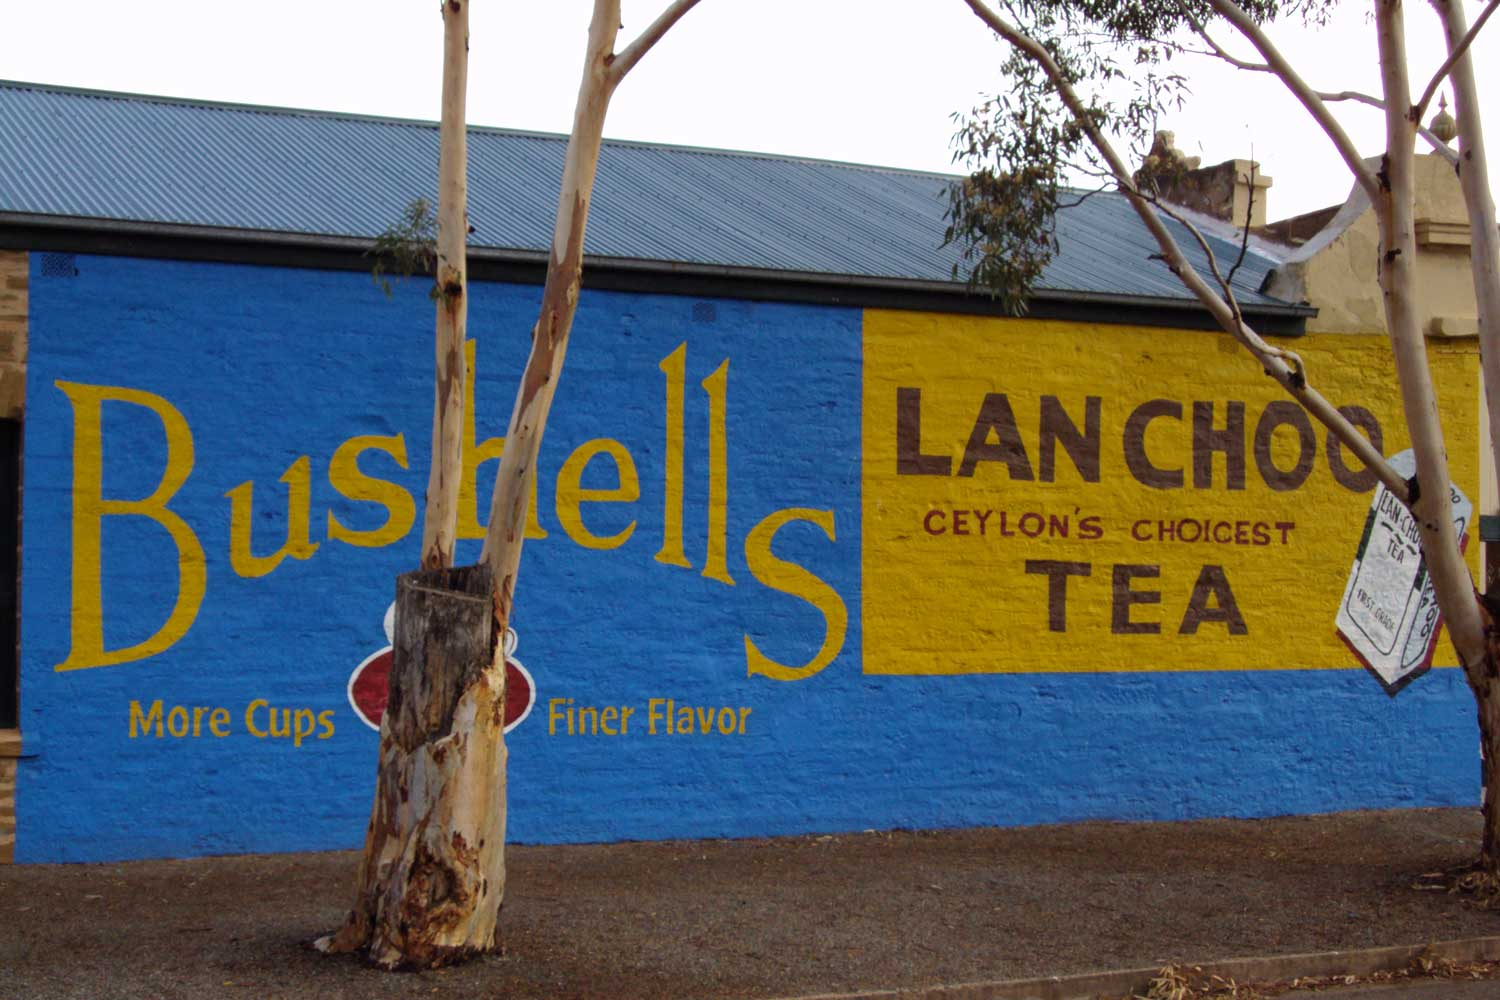 Bushells tea advertising on the side of an old store in Terowie, South Australia. By Denisbin on Flickr